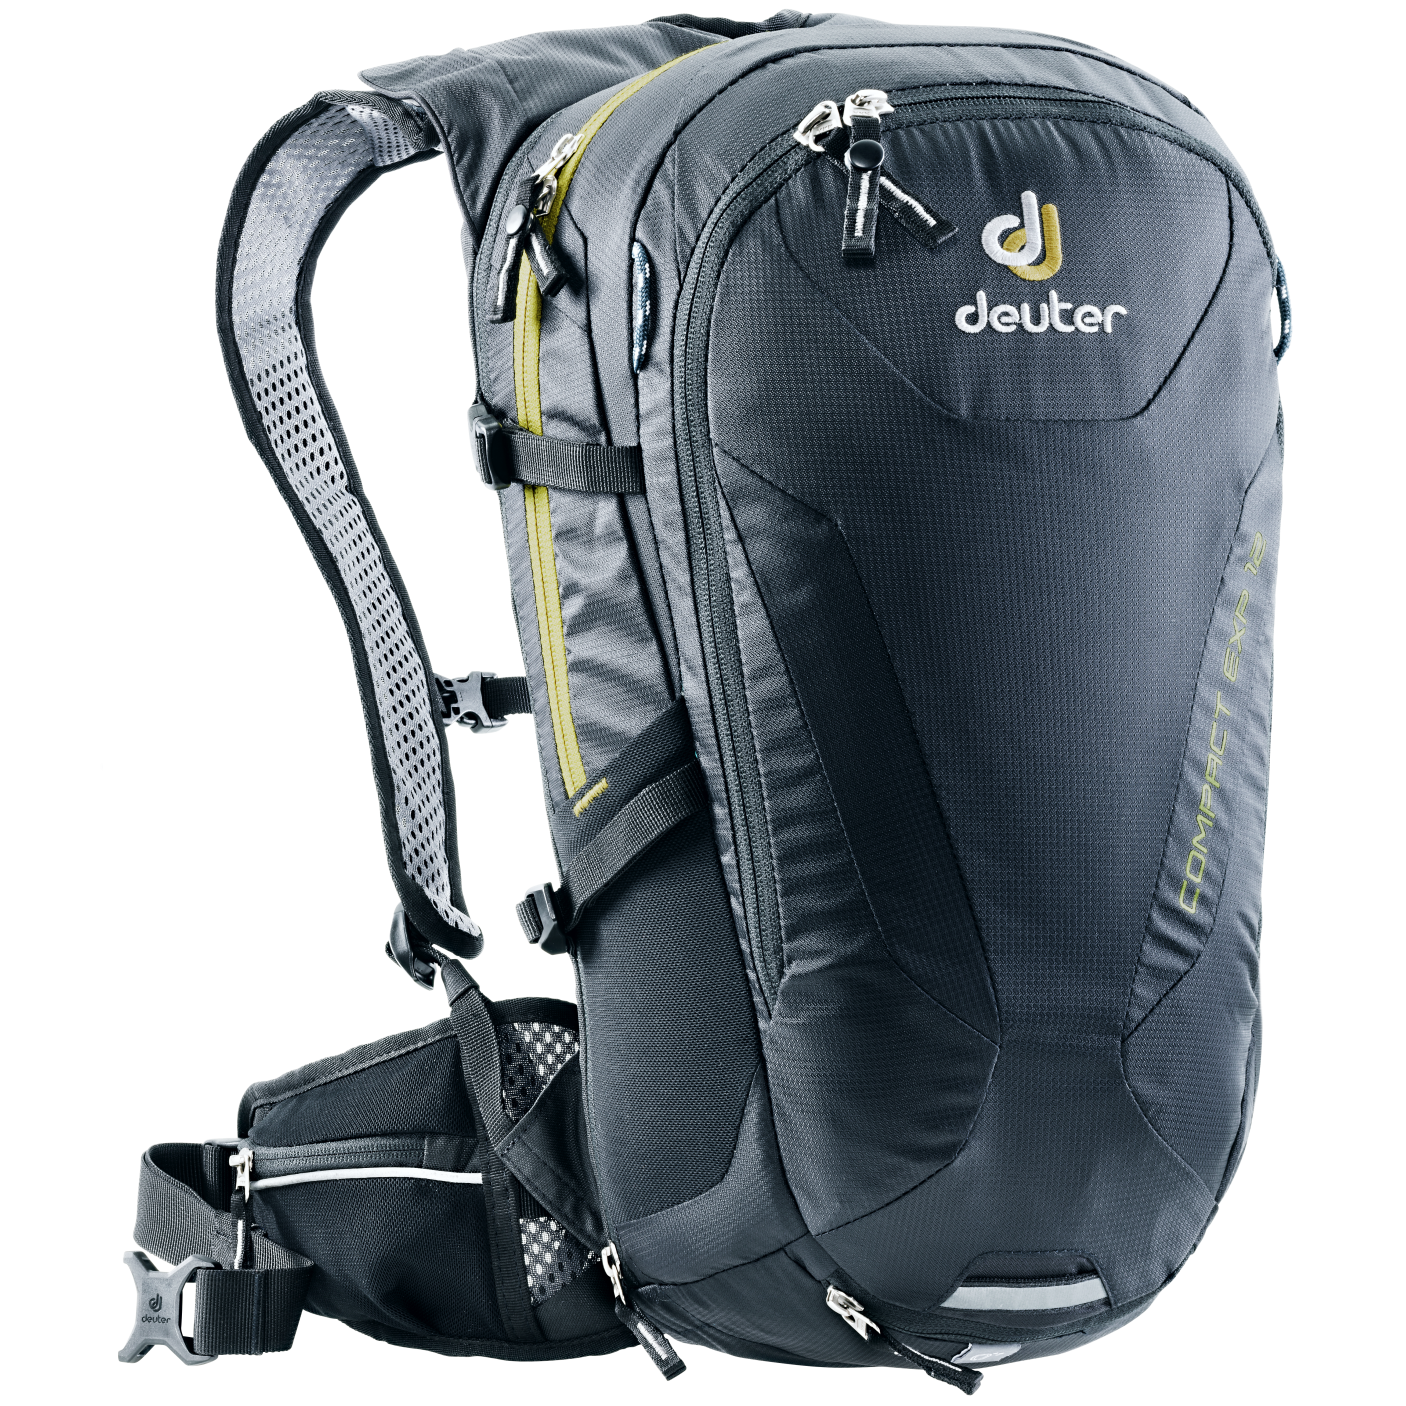 Deuter Compact Exp 12 Backpack - 2019